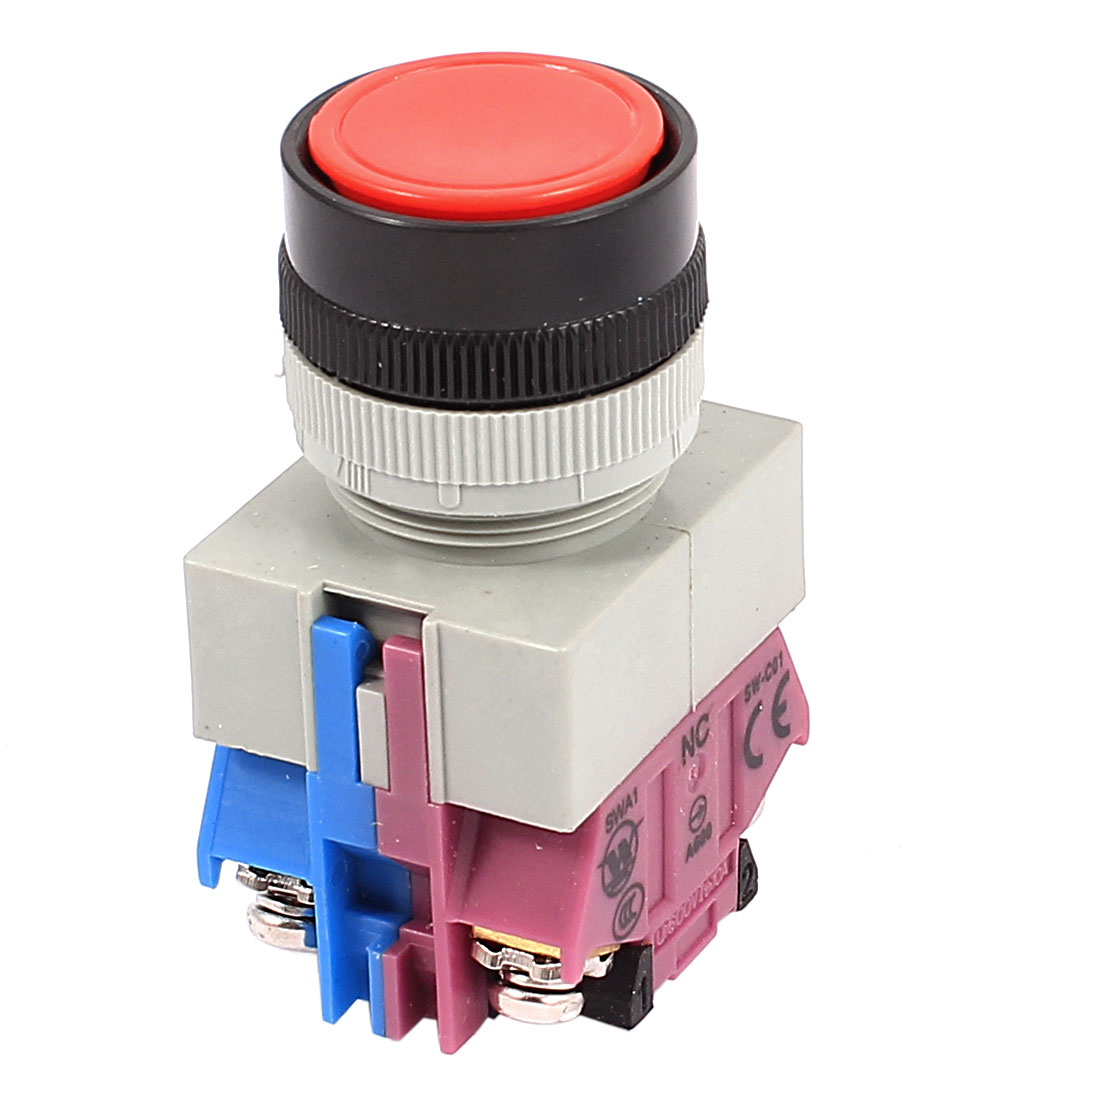 AC 600V 10A Red Sign Ignition Momentary Push Button Switch 22mm DPST 1 NO 1 NC